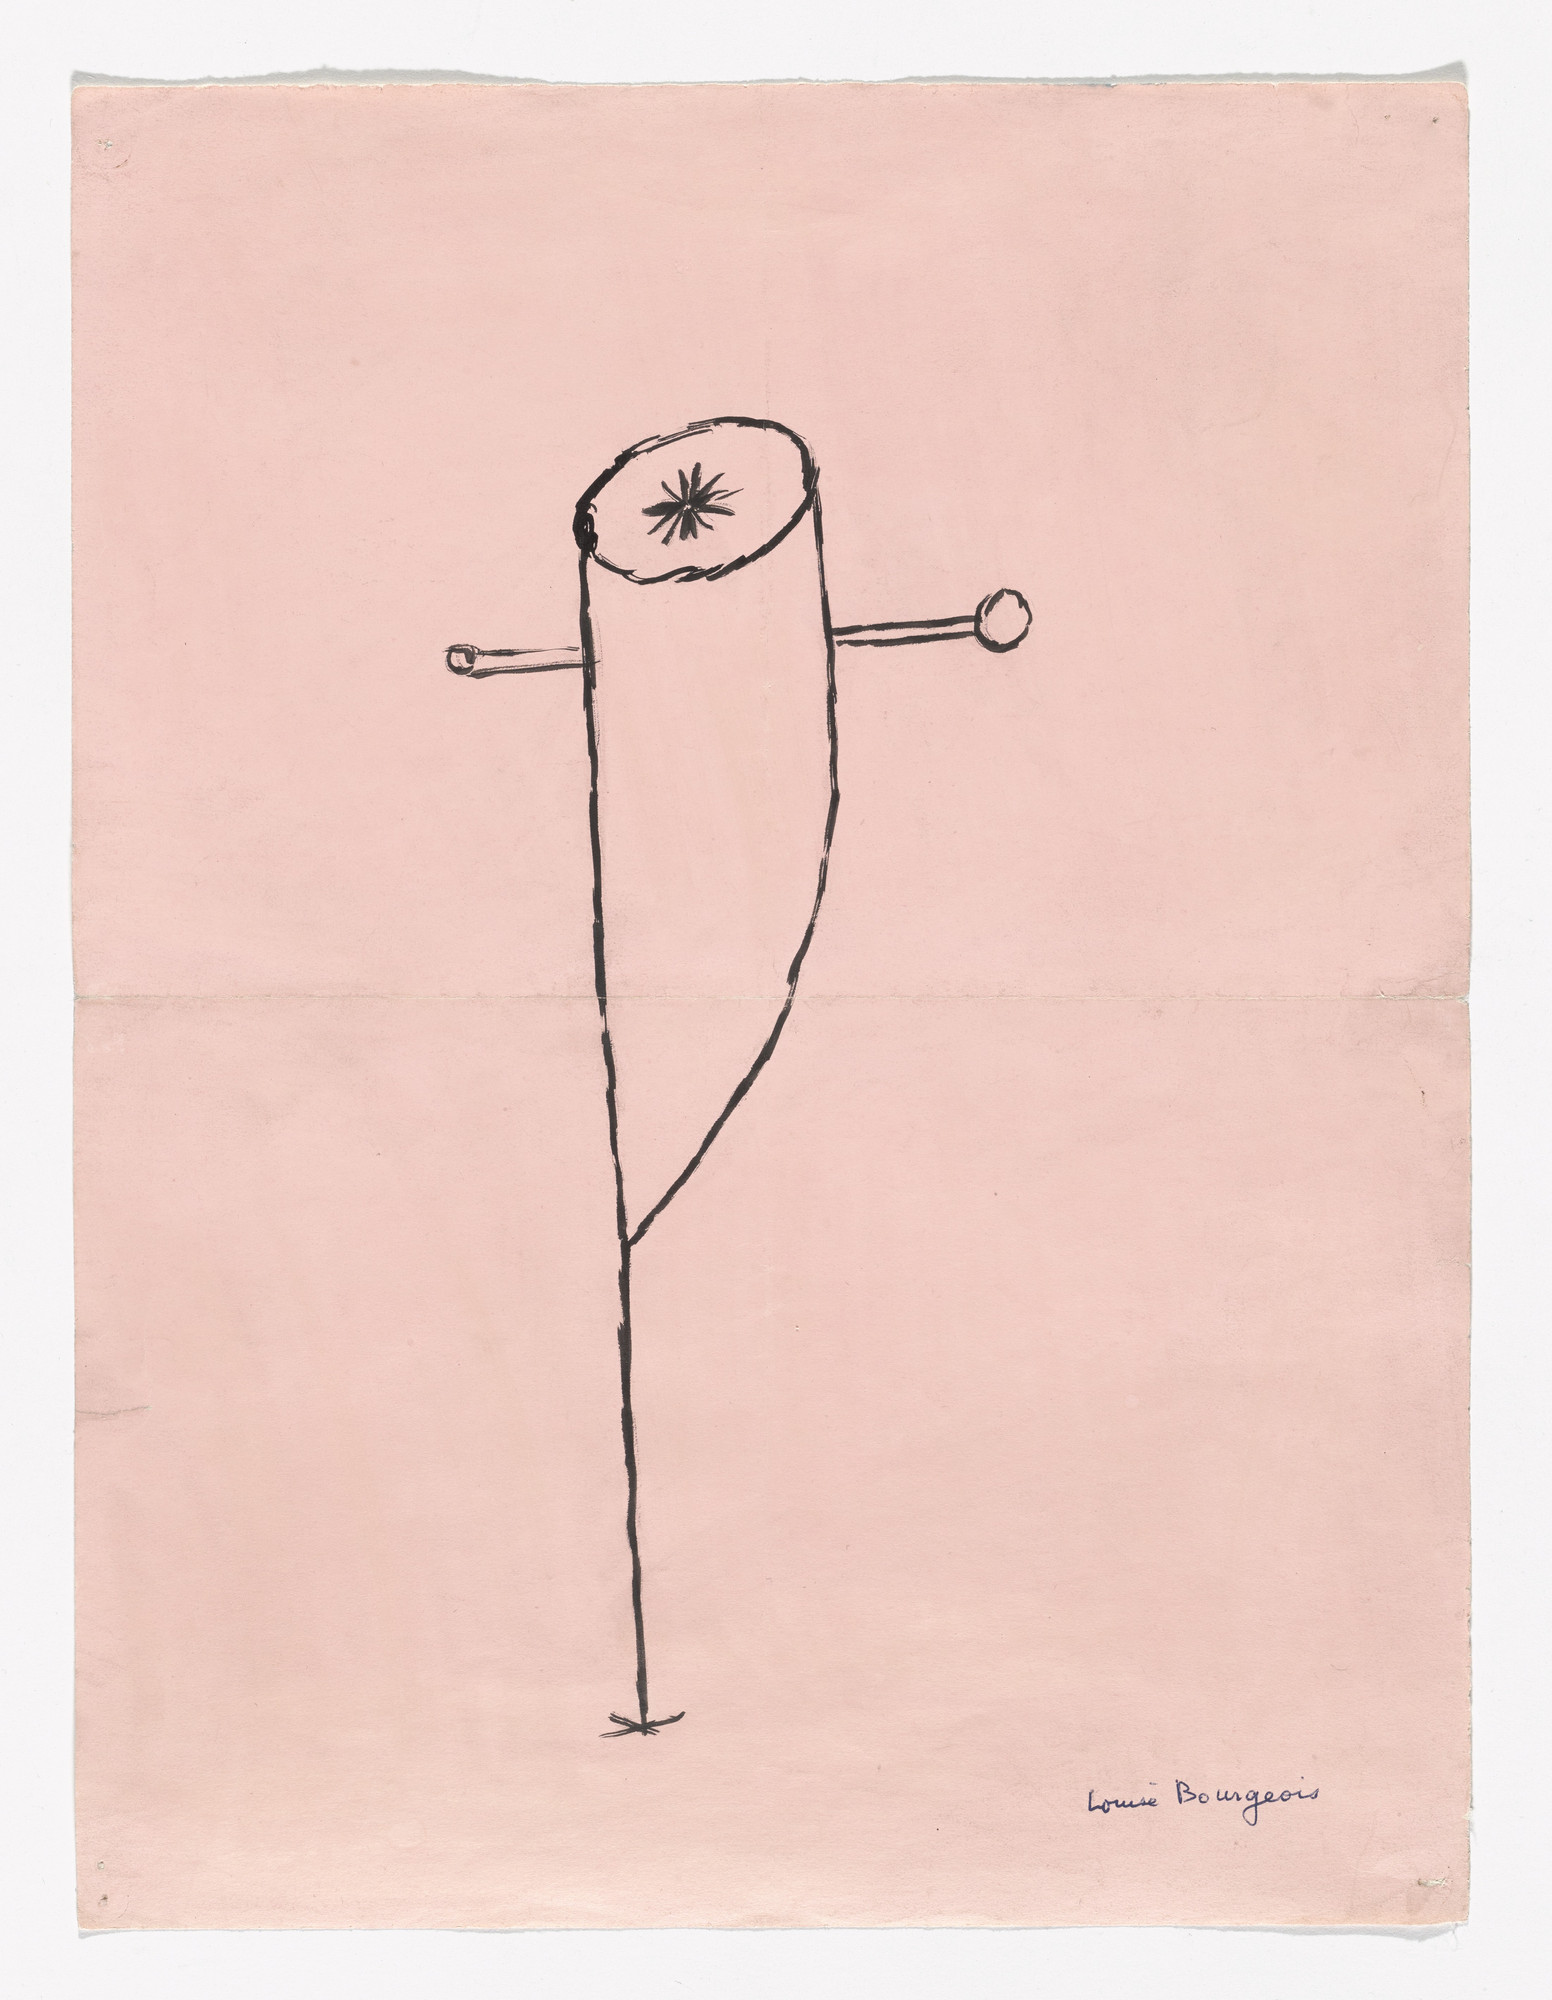 Louise Bourgeois. Untitled. (1947)